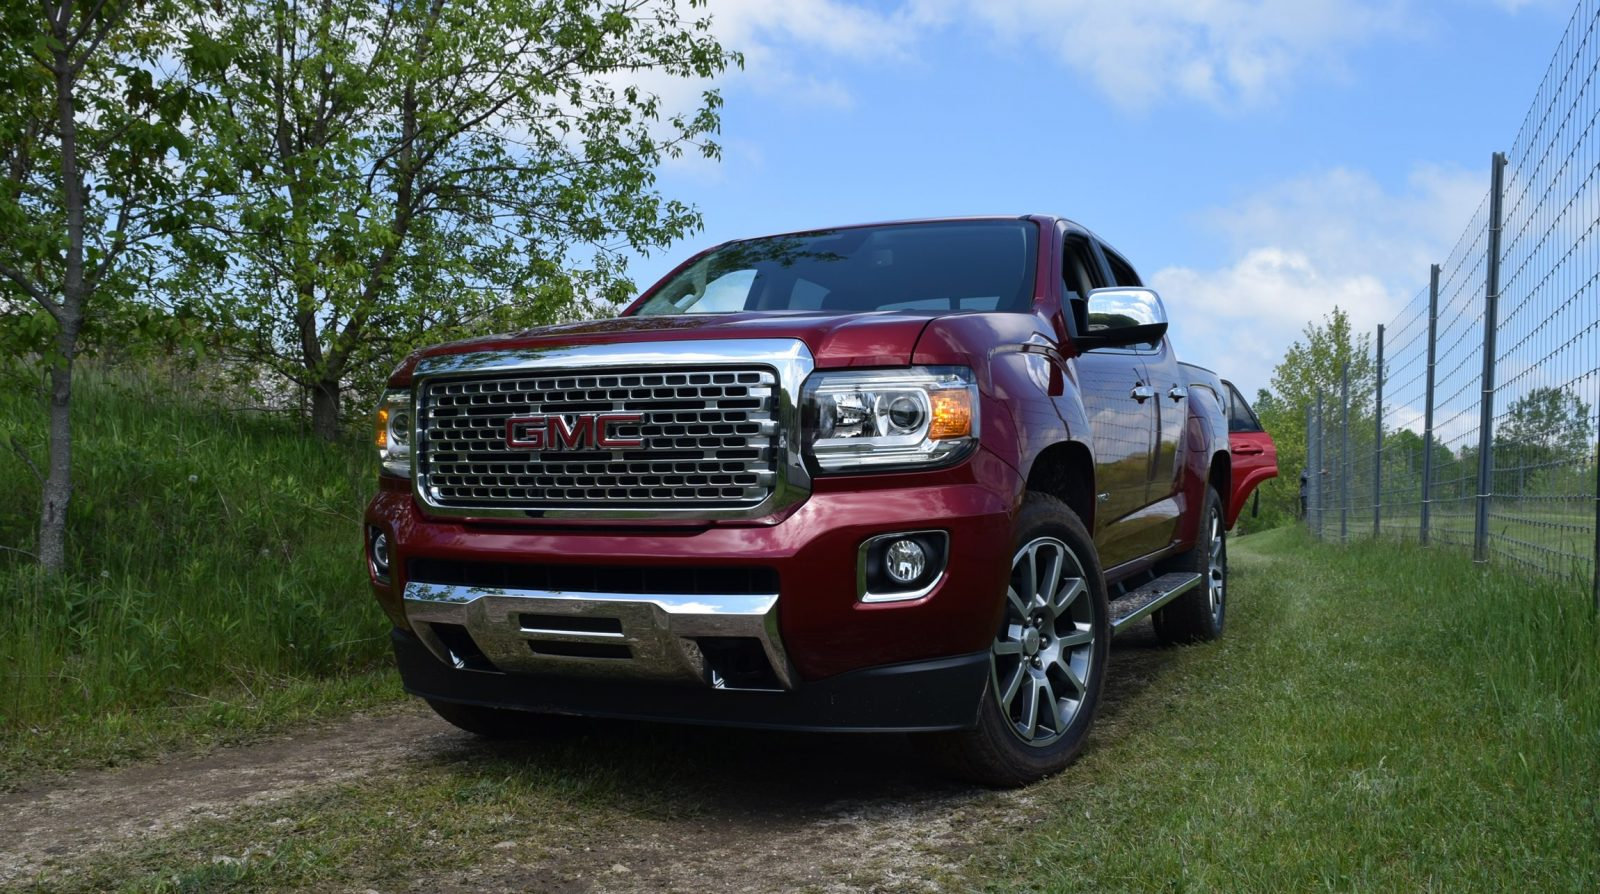 in pictures 2017 gmc canyon denali 4x4 swb crew car shopping. Black Bedroom Furniture Sets. Home Design Ideas